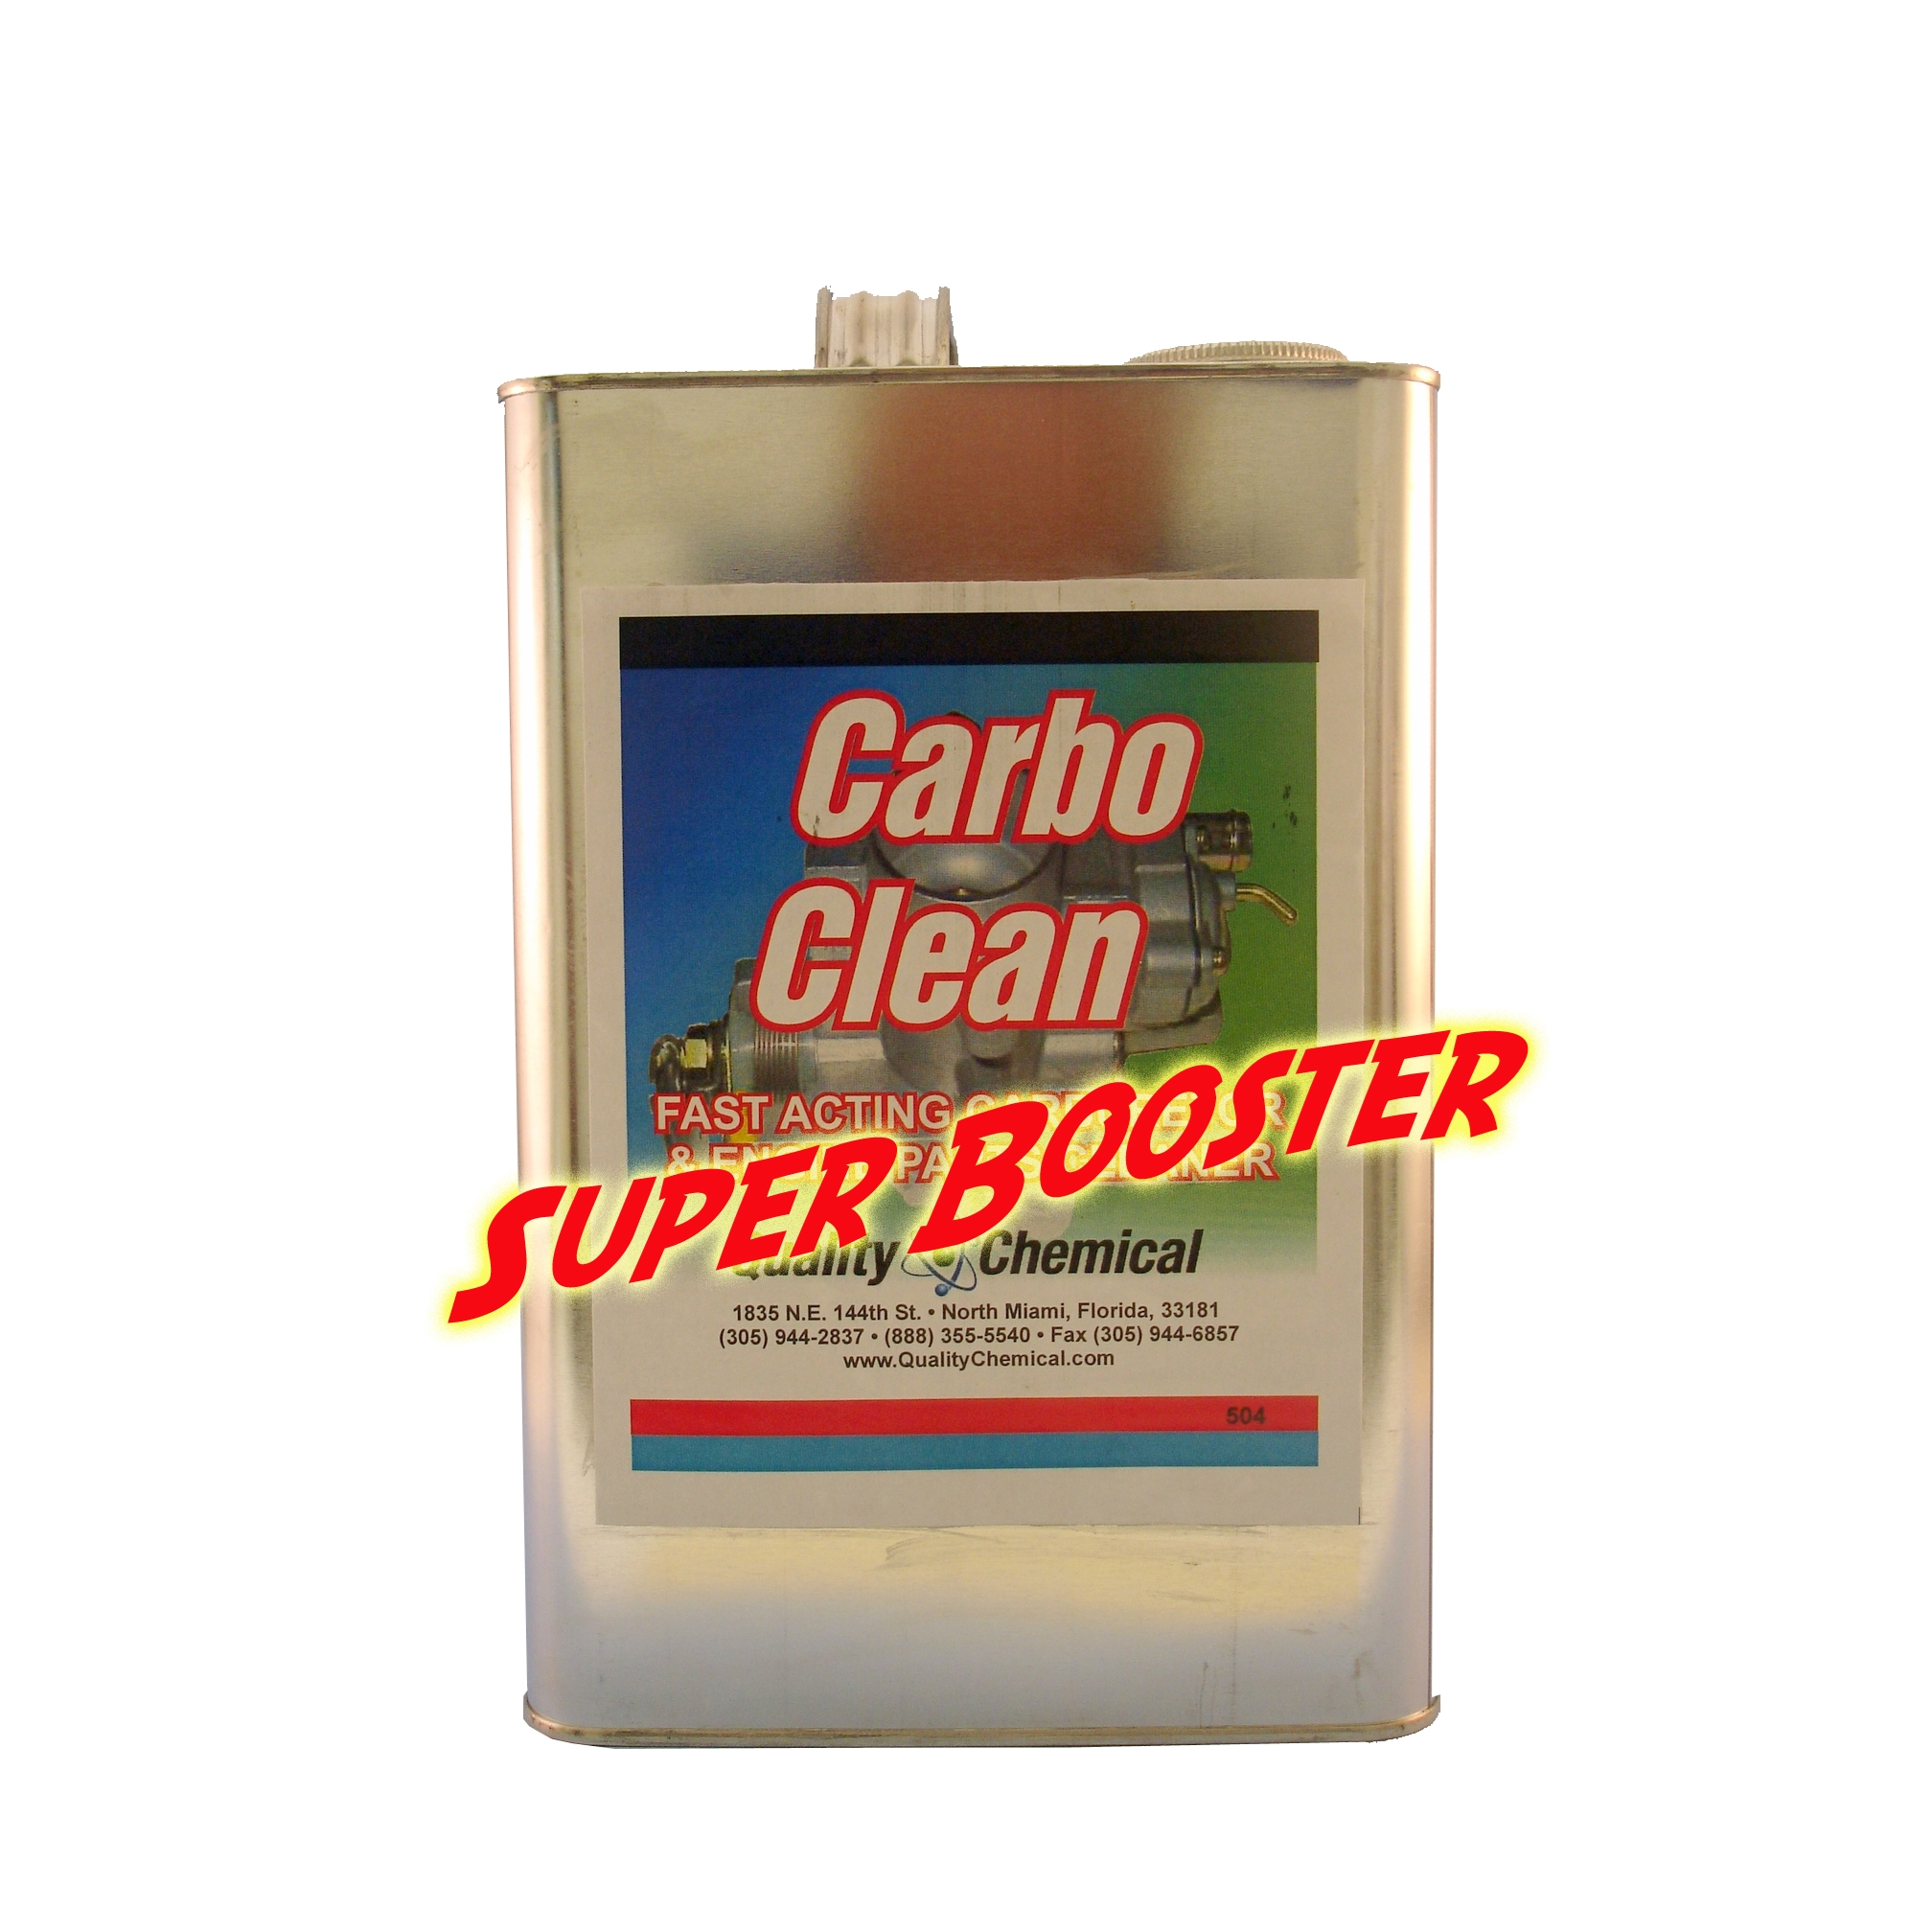 Carbo Clean Super Booster